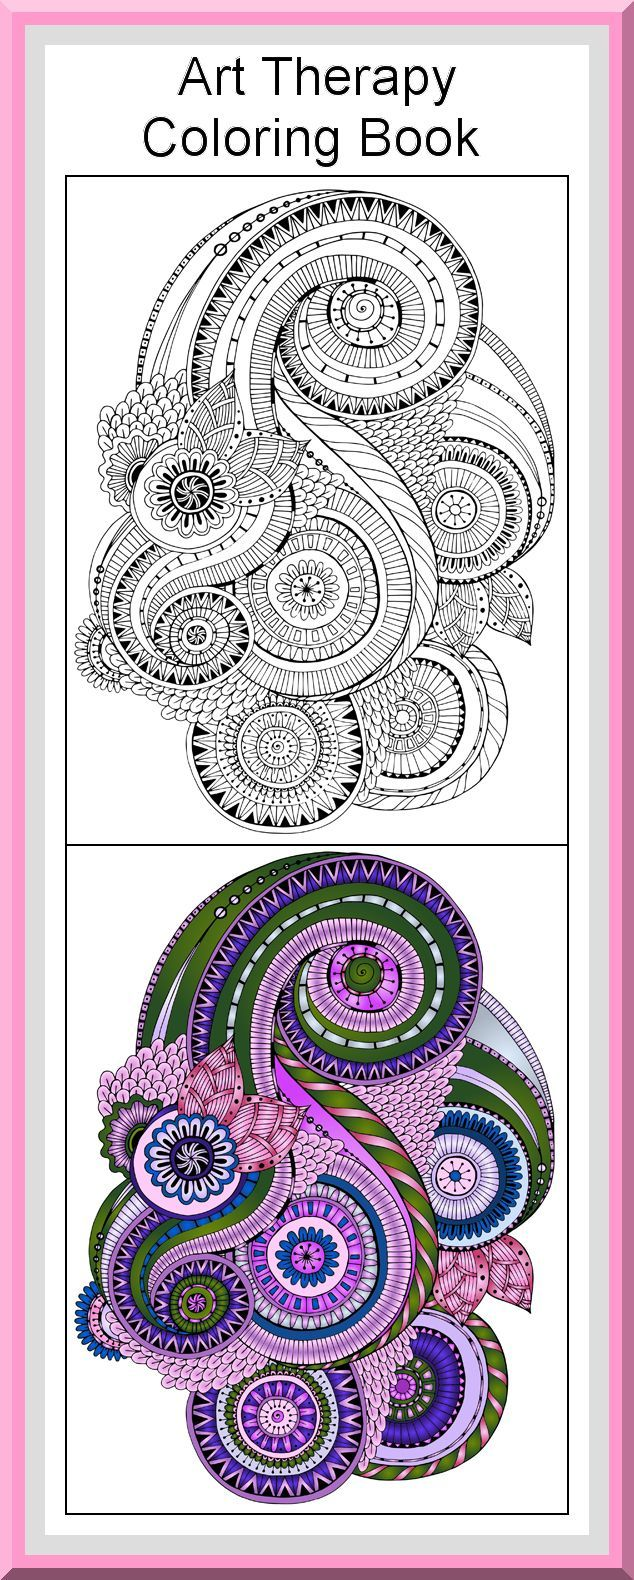 Mandala coloring pages art therapy recovery - Printable Art Therapy Coloring Pages 30 High Definition Coloring Pages Black Outlines With Colored Examples This Mandala Art Therapy Coloring Page Is Fro